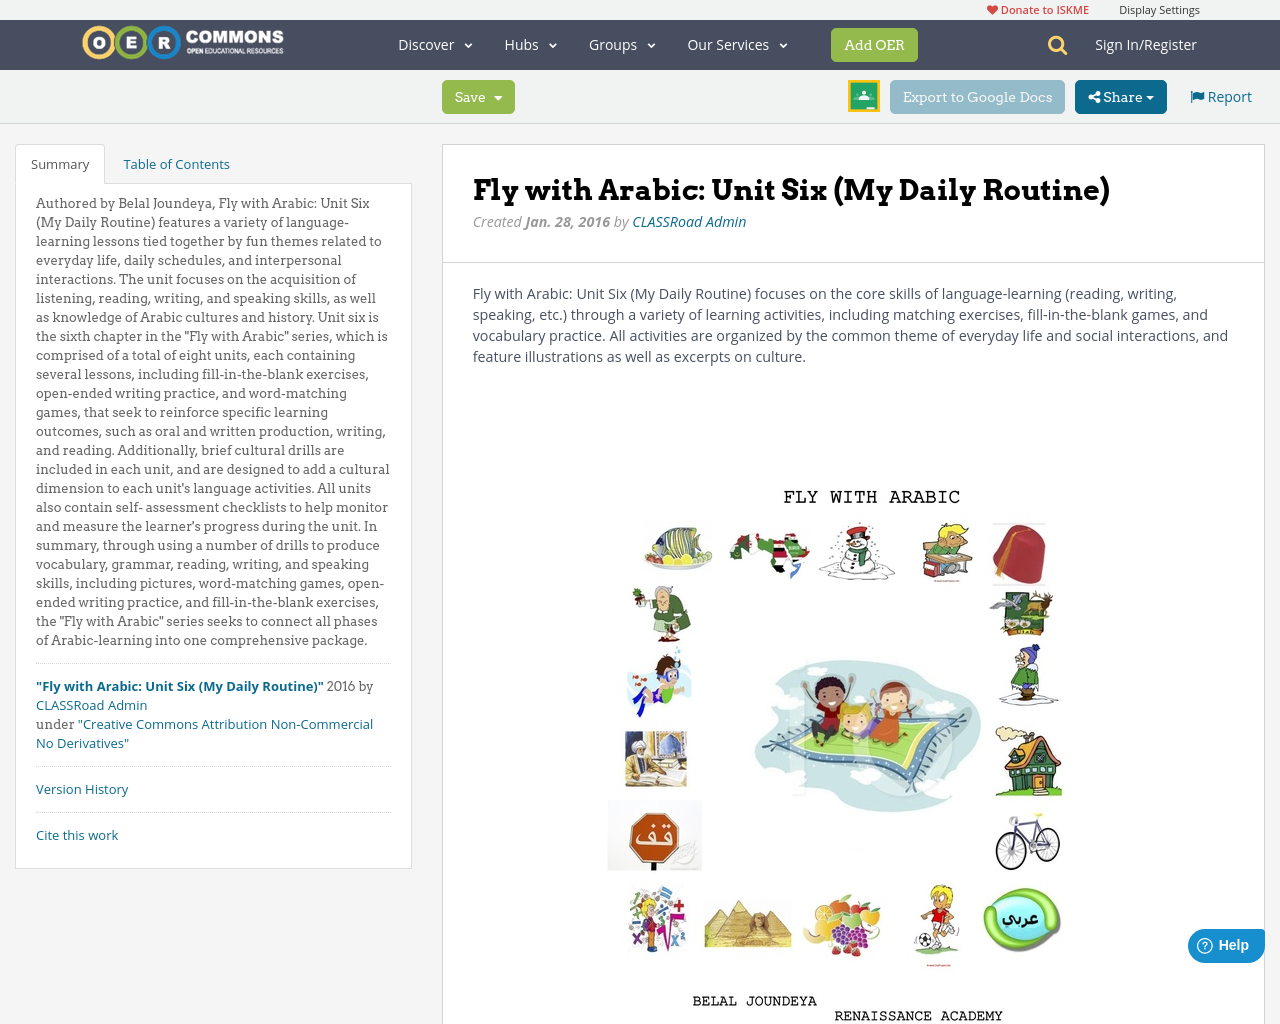 fly arabic unit six my daily routine oer commons